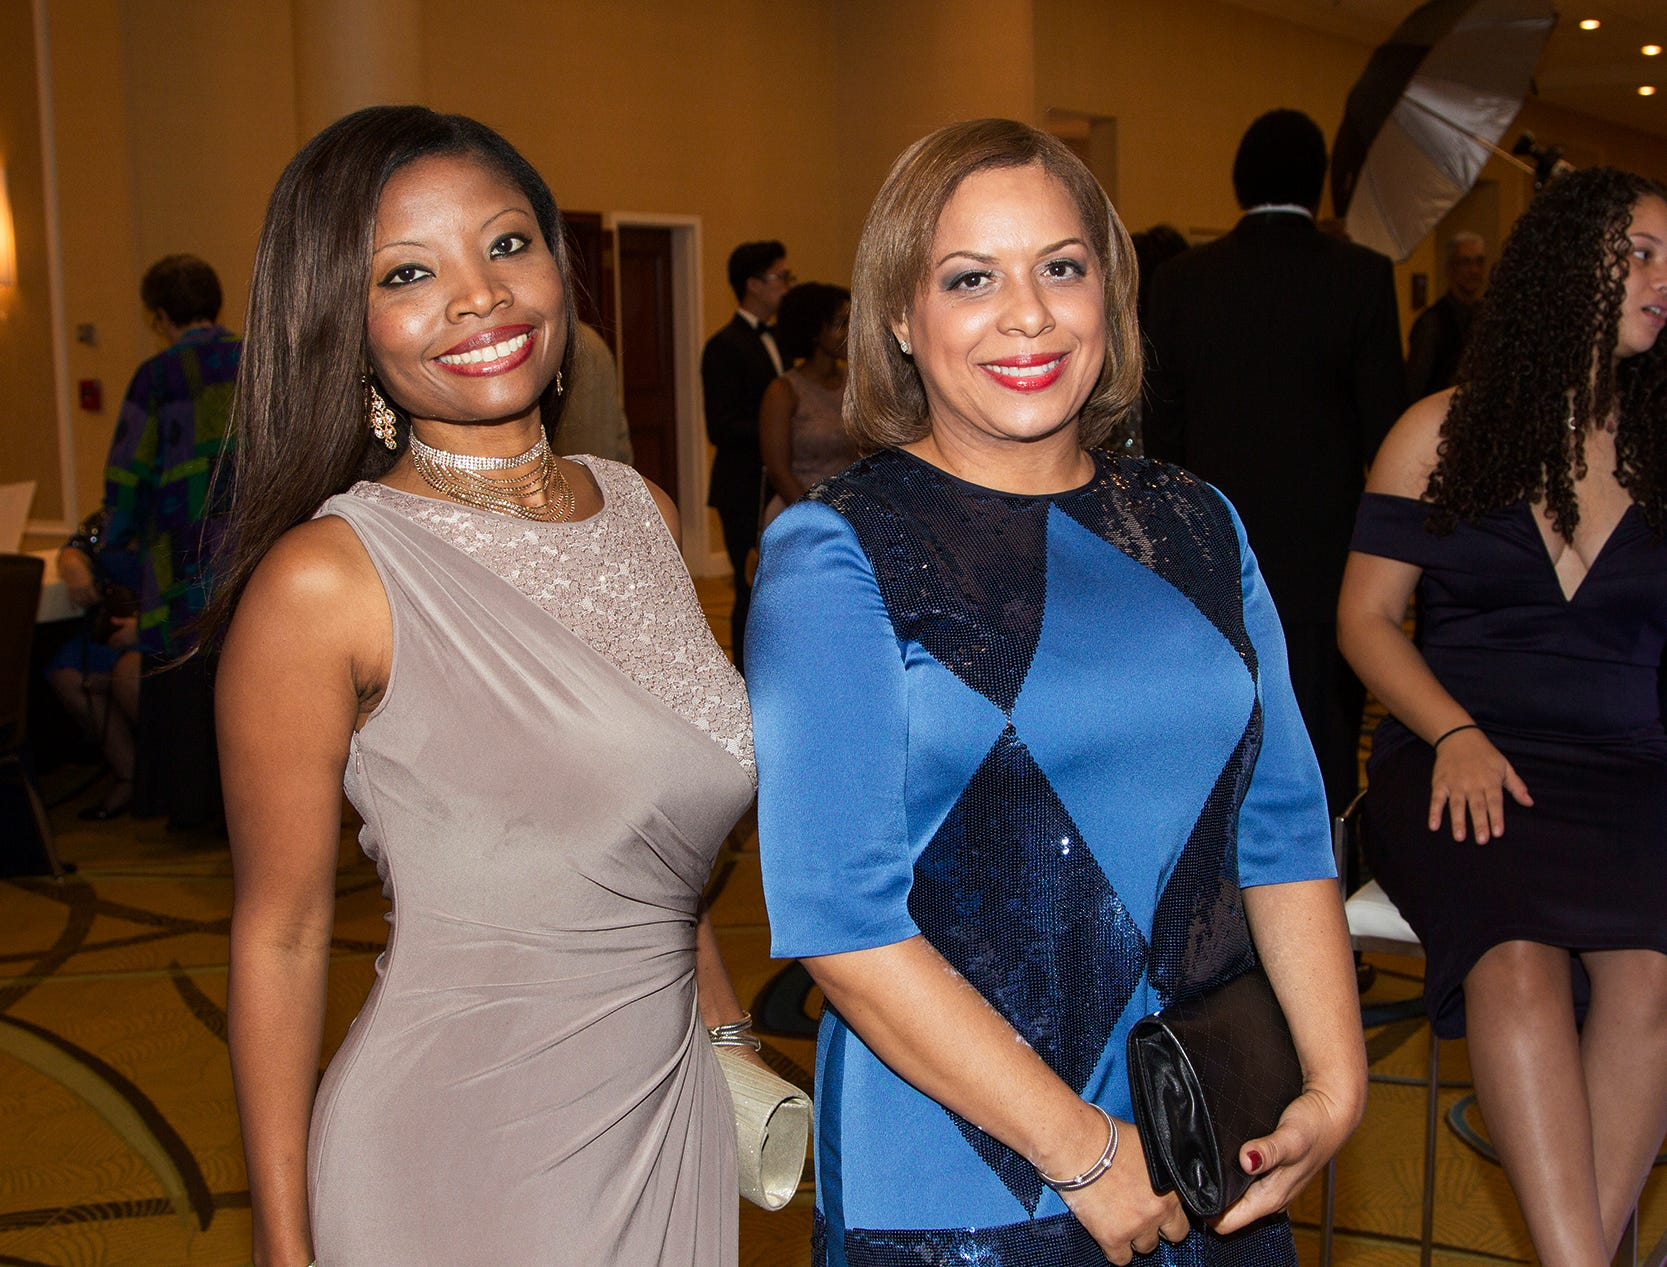 Maggie Delany, Belkis Cabral. Jessie Banks Foundation holds 16th annual Scholarship Awards Gala in Teaneck. 11/09/2018